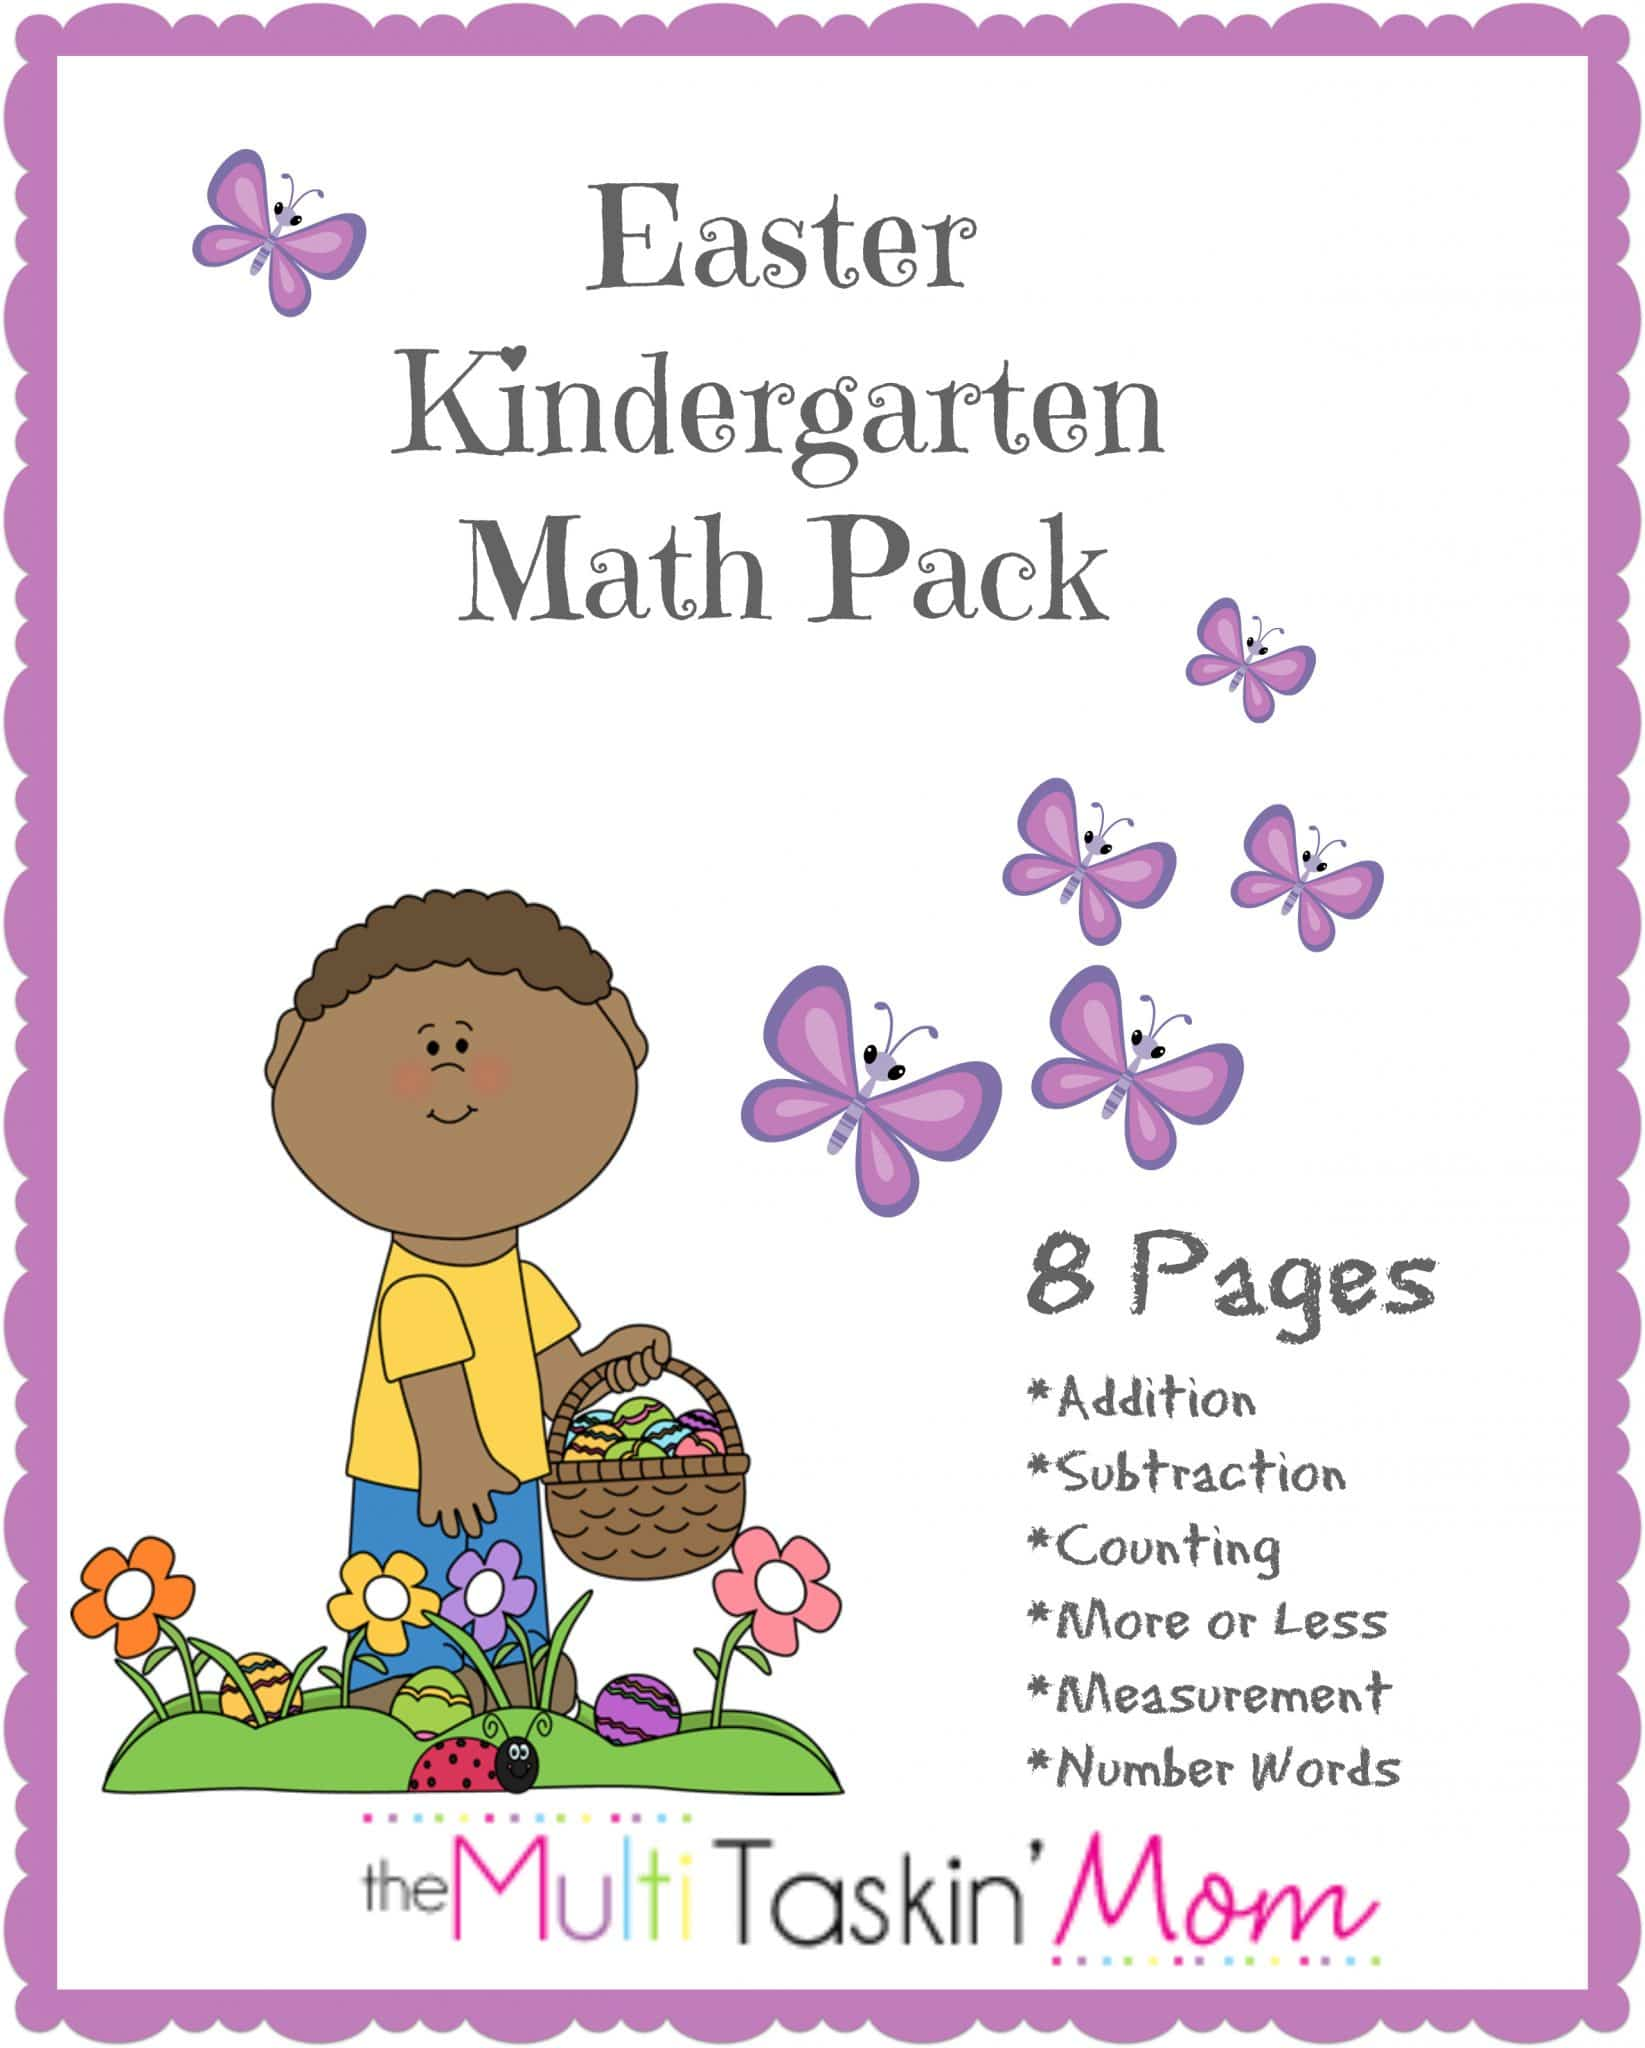 ... Easter Printables: Kindergarten Math Pack! - The Multi Taskin' Mom